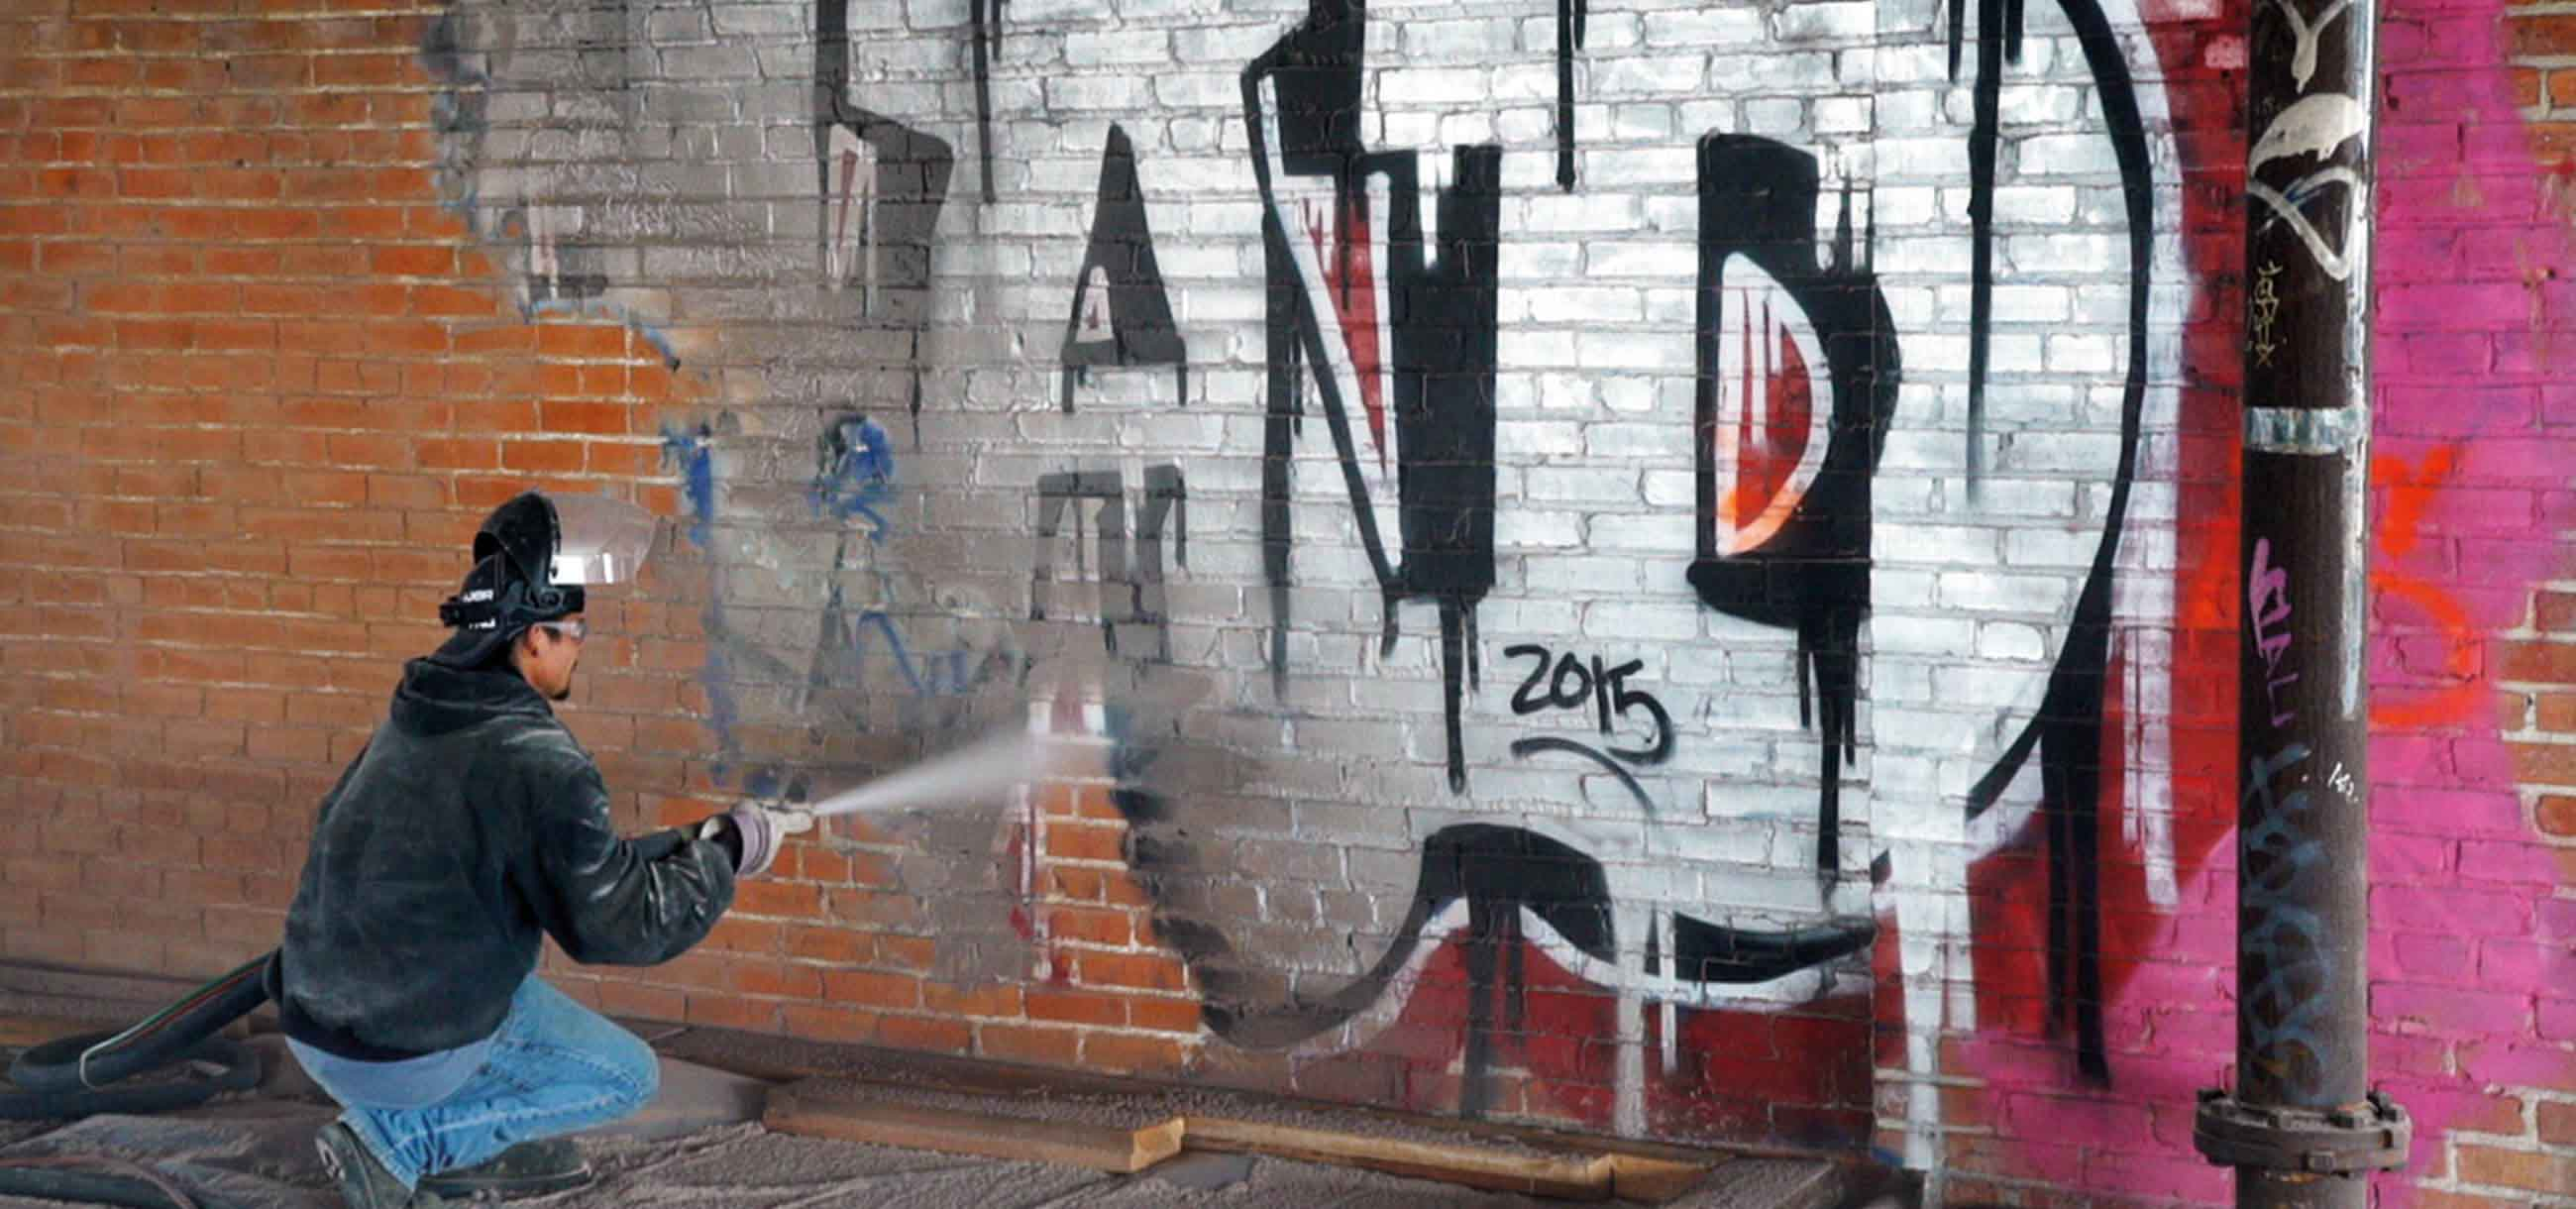 removing graffiti from brick wall